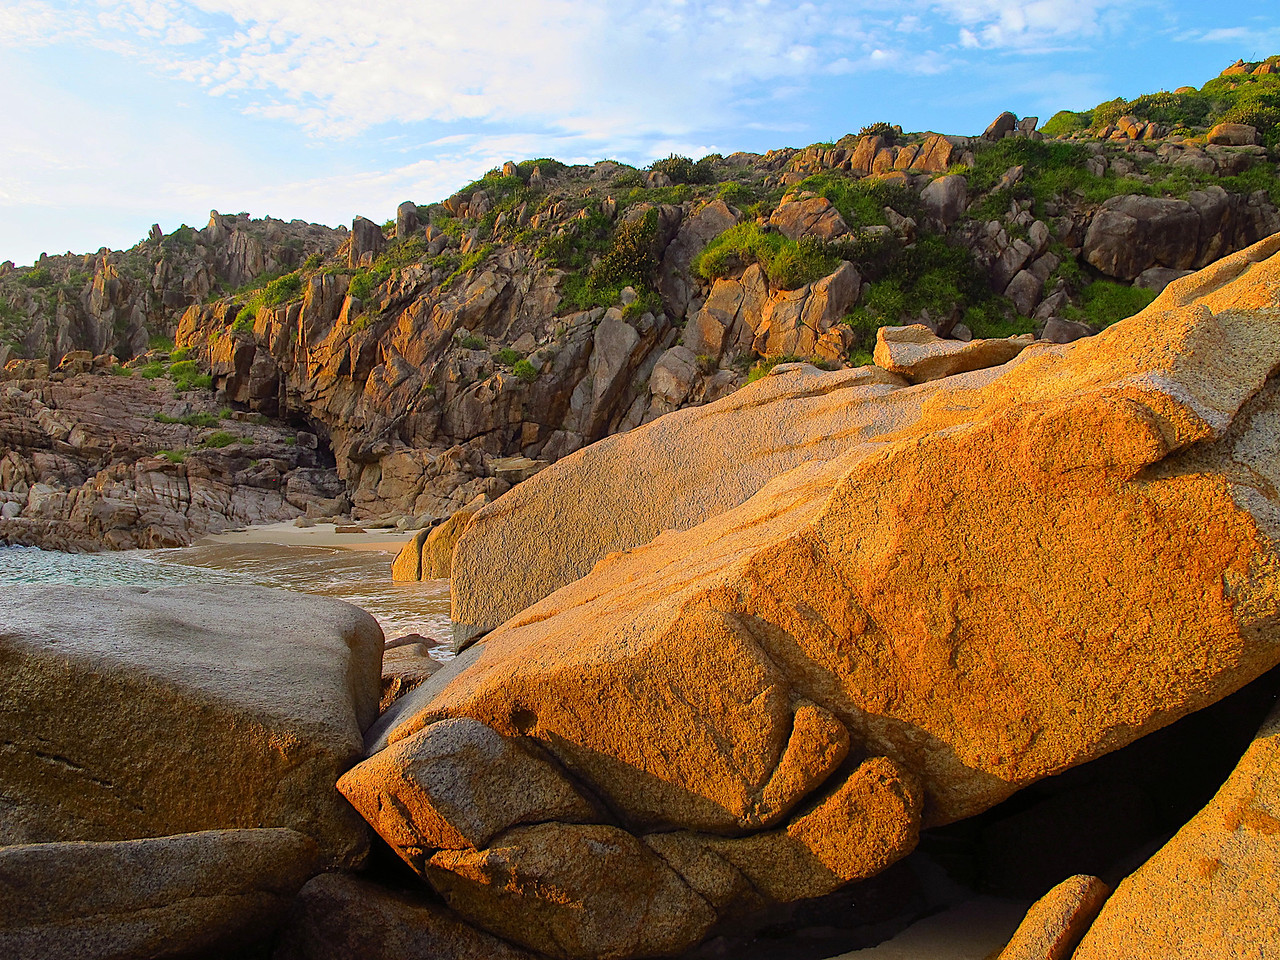 This area of coastline in Vietnam is made largely from granite.